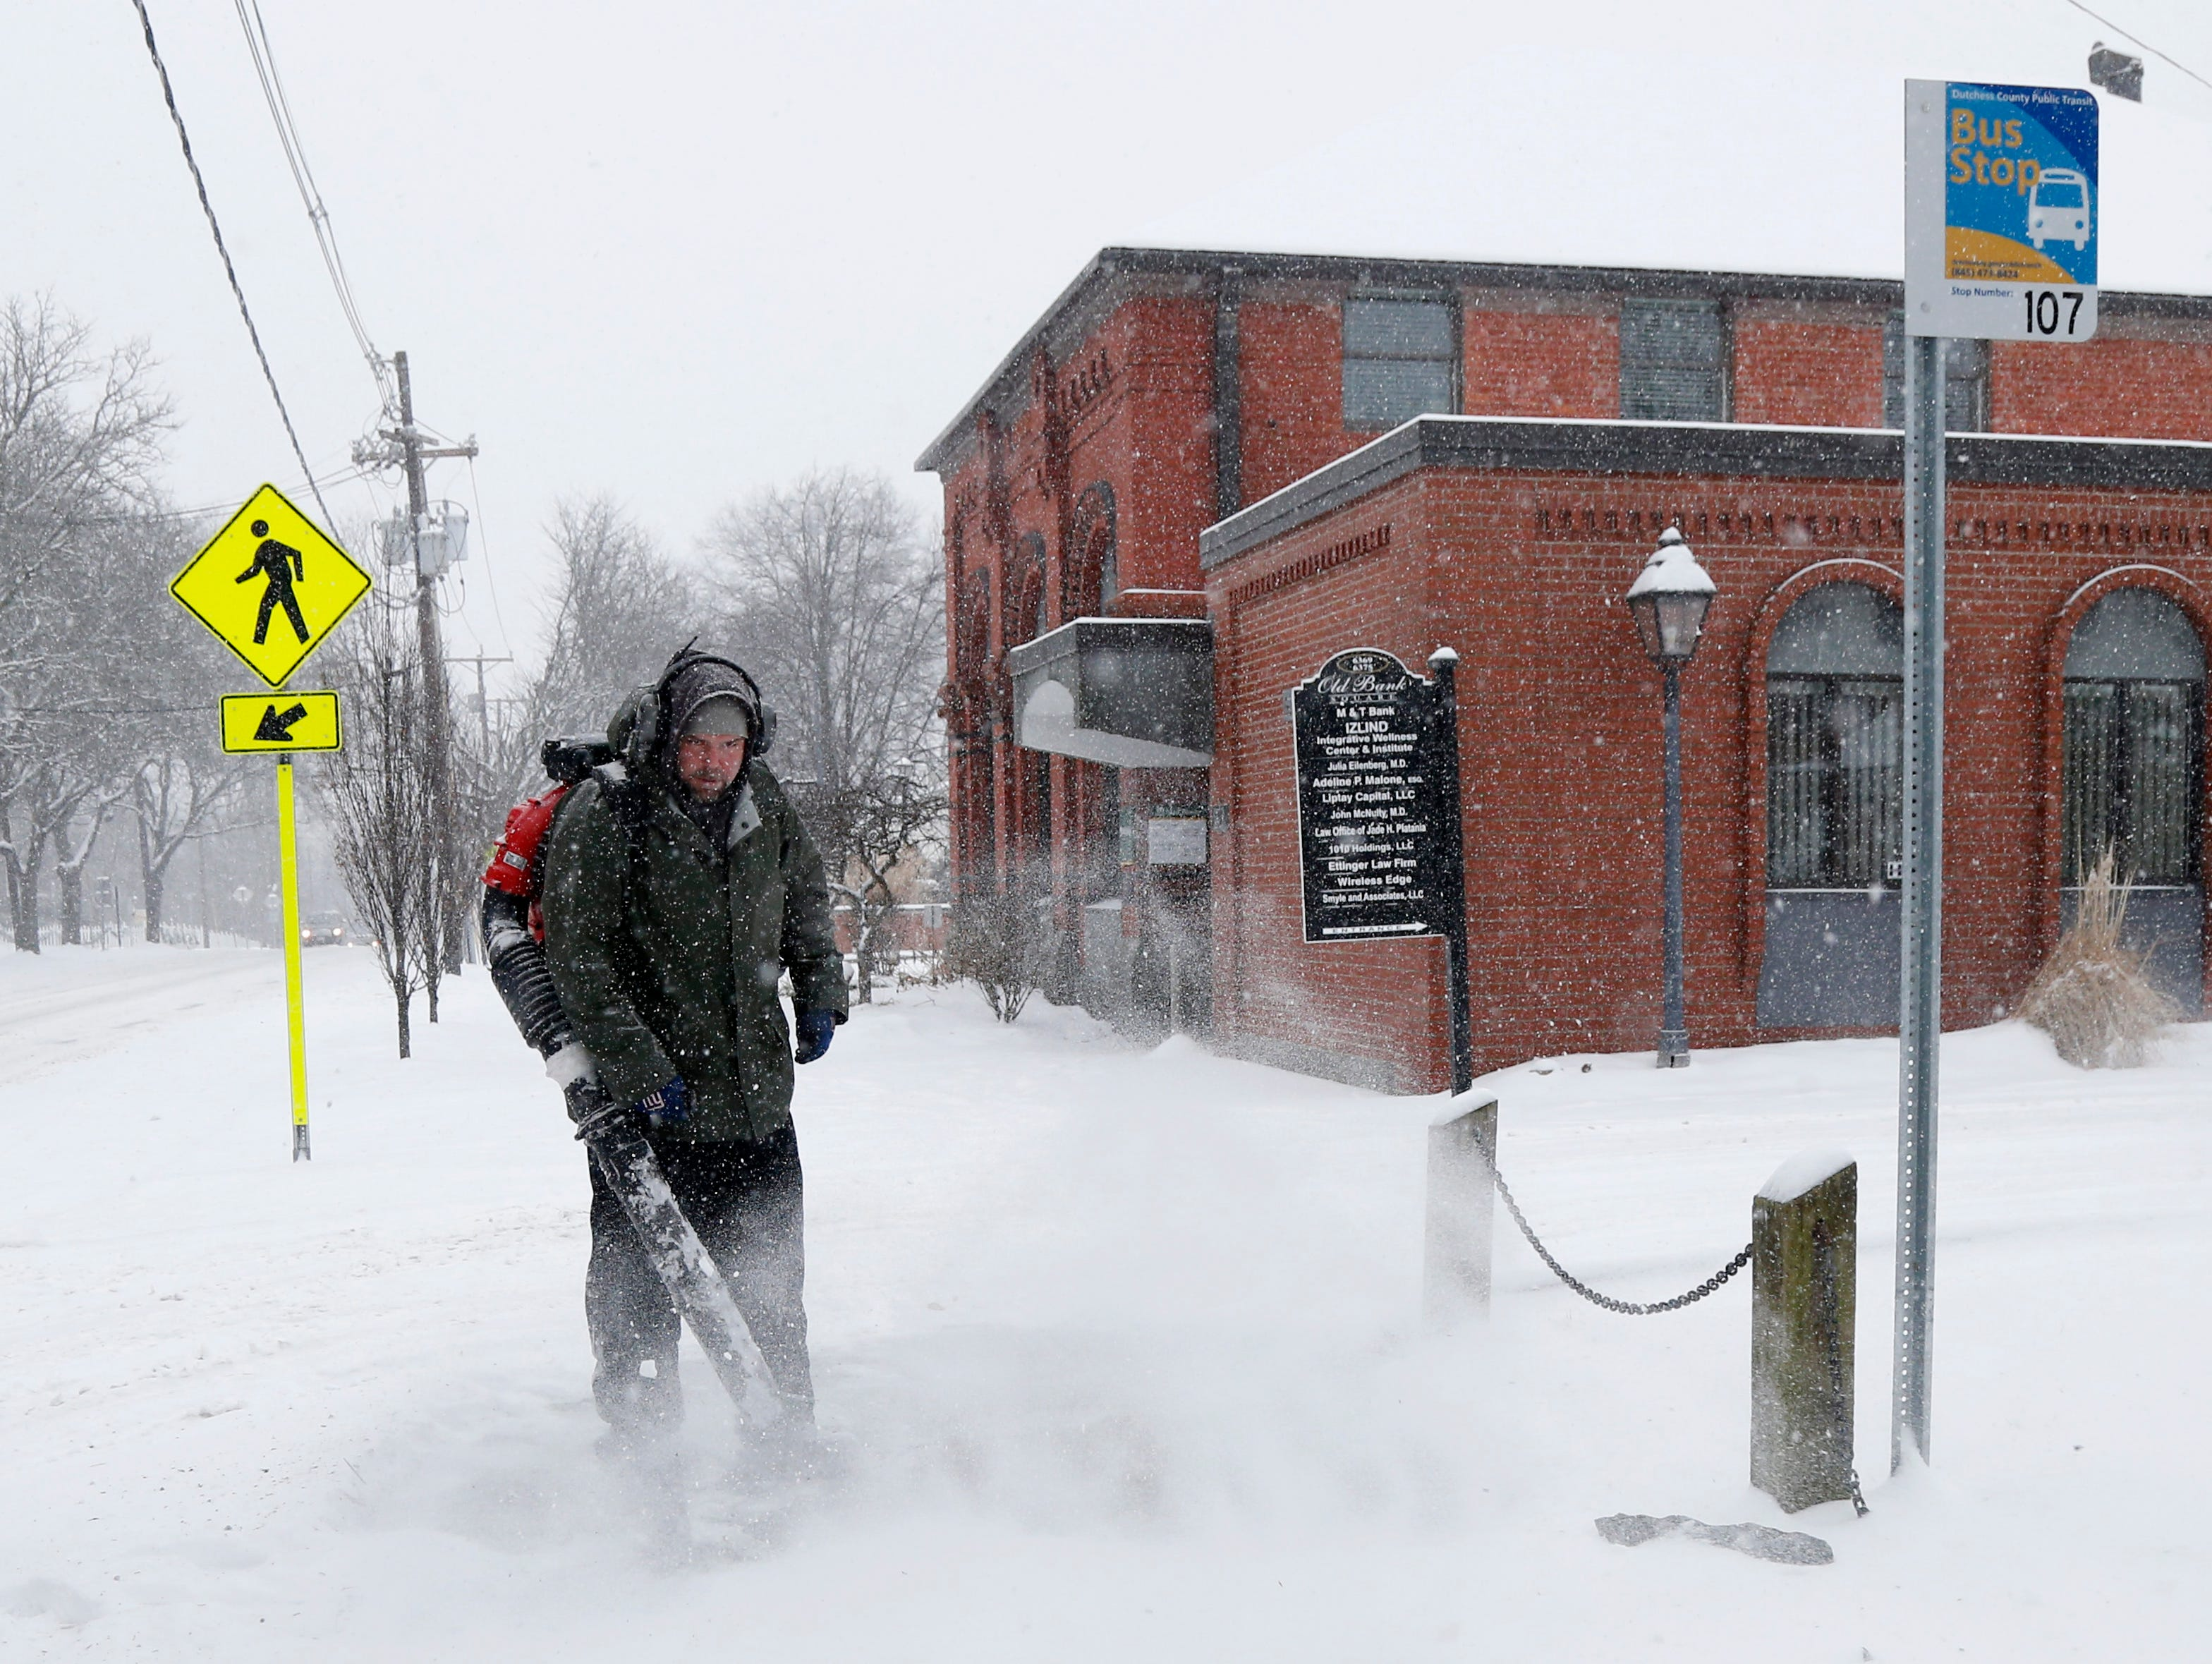 Casey Martin, a contractor for the USPS uses a leaf blower to clear snow from the sidewalk in front of the Rhinebeck Post Office on Mill Street on February 12, 2019.